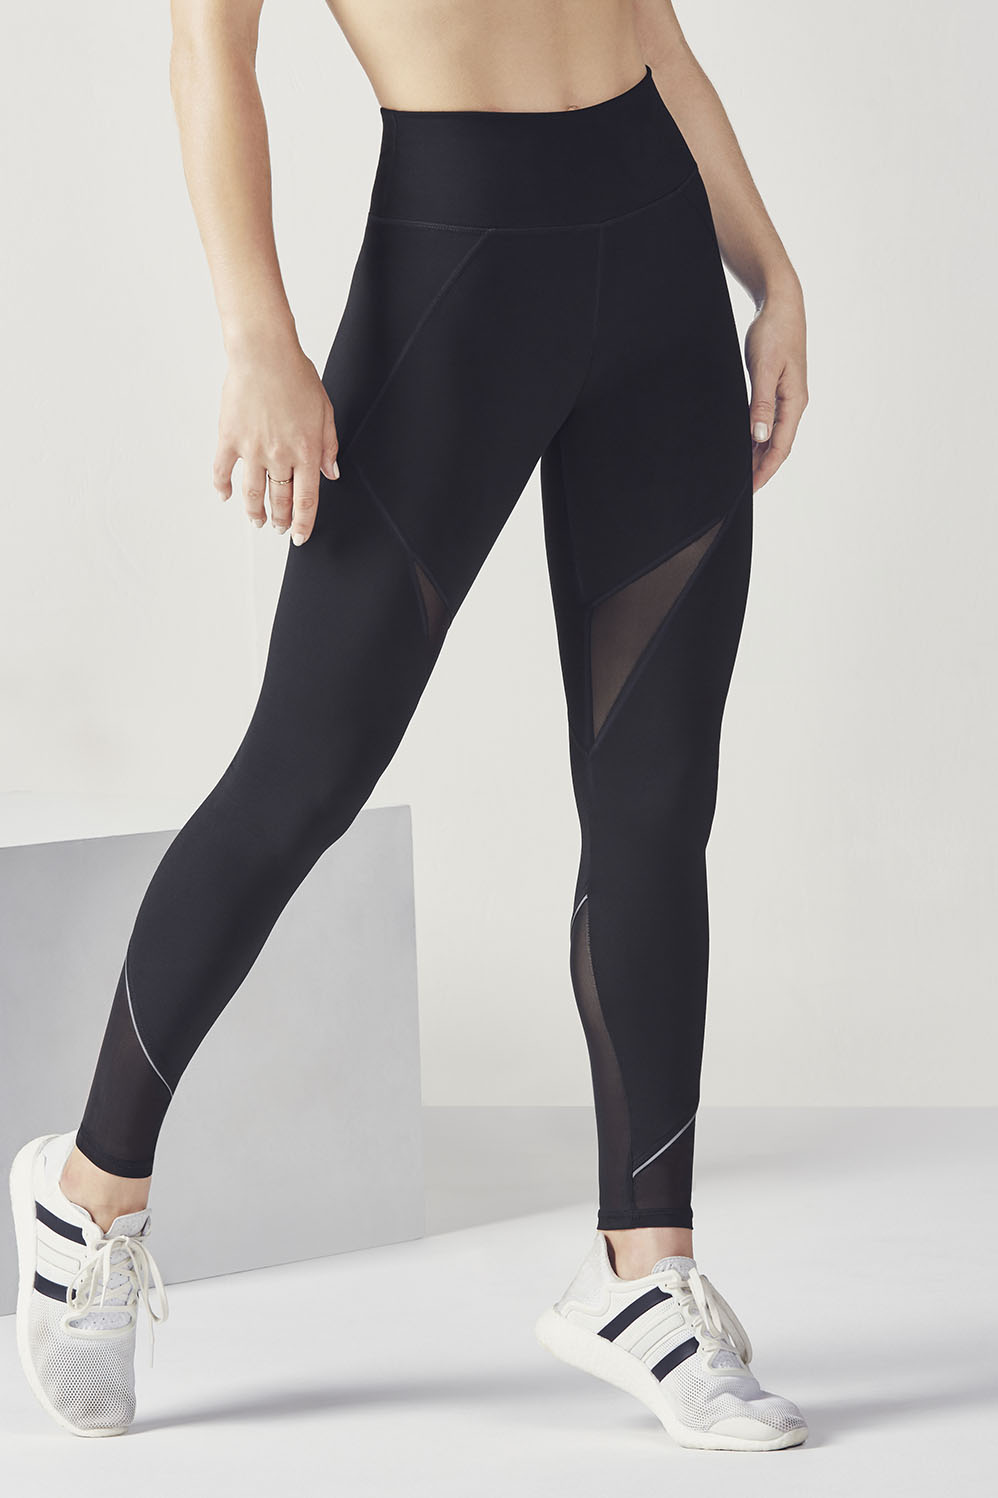 011415f5db5acd High-Waisted Mesh PowerHold® Legging - Black/Silver